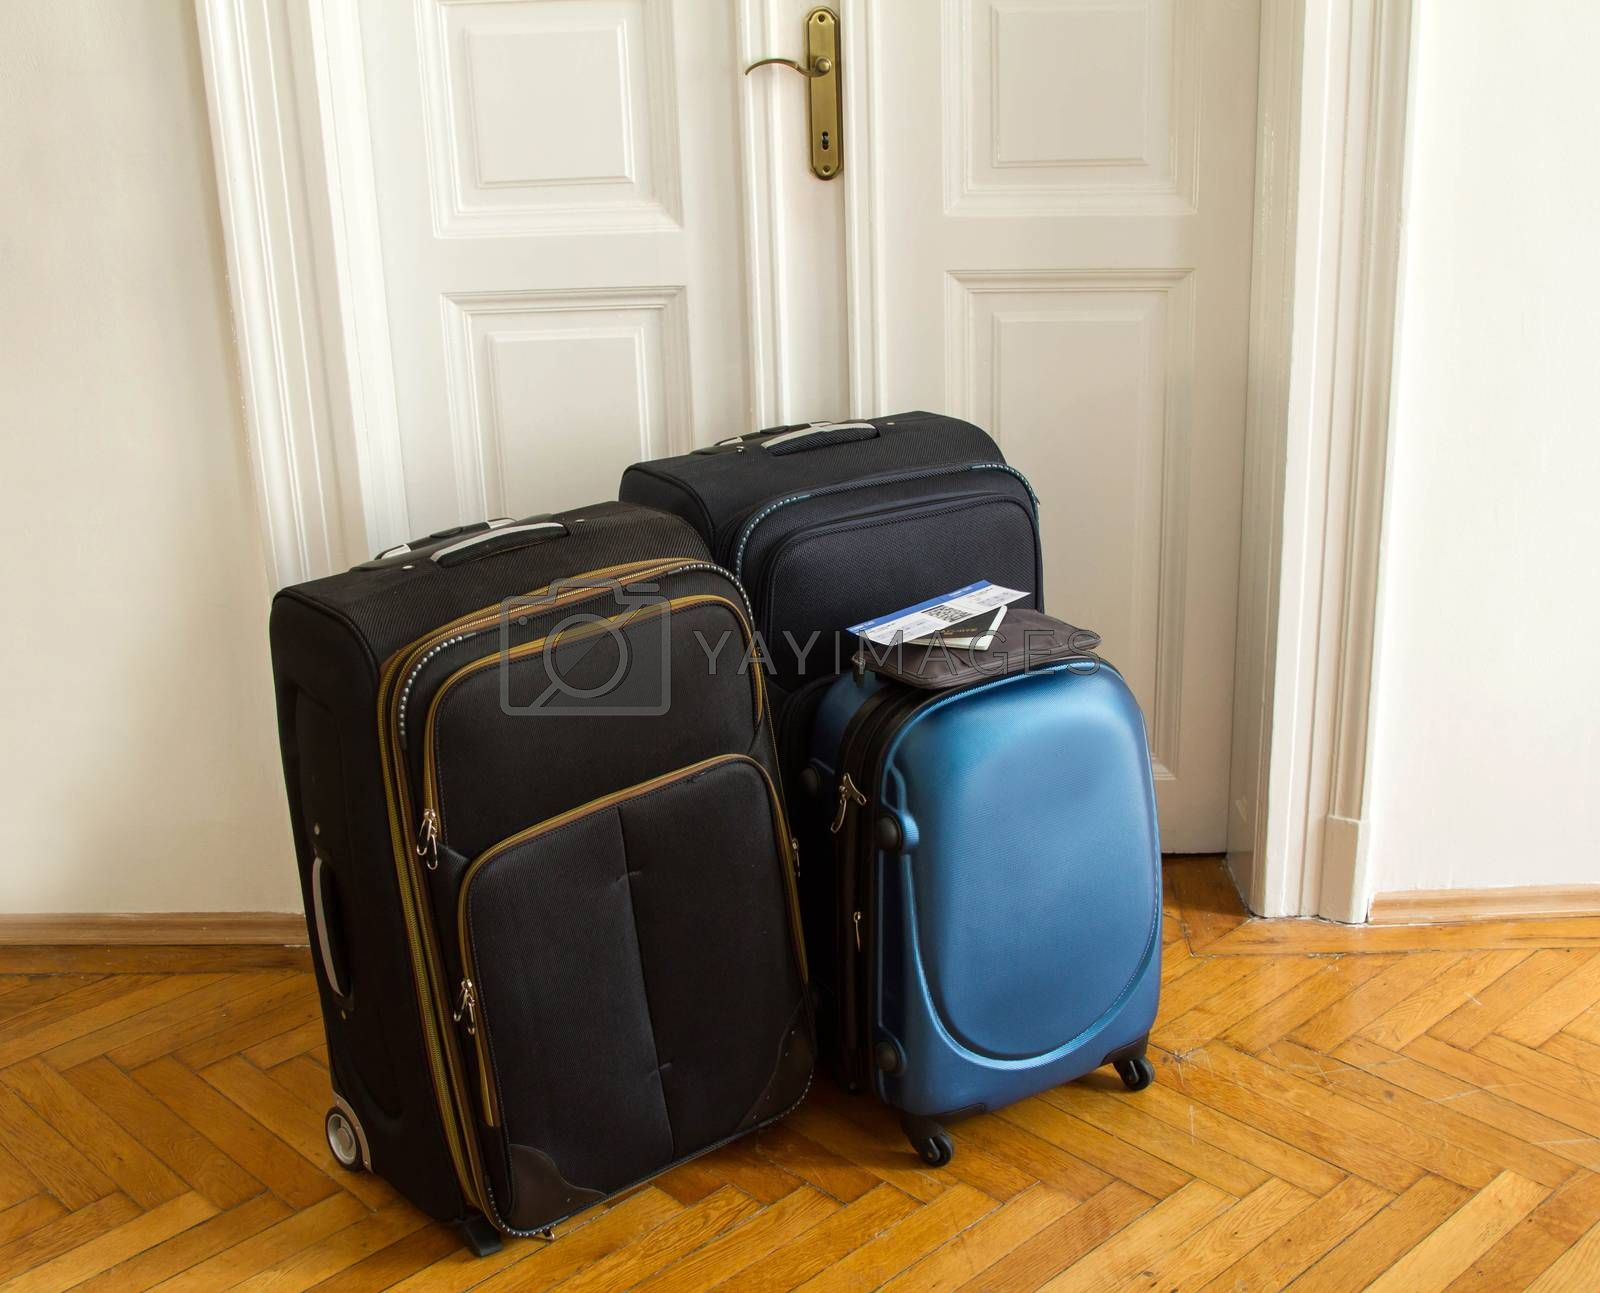 Airline ticket, passport and luggage, ready to travel